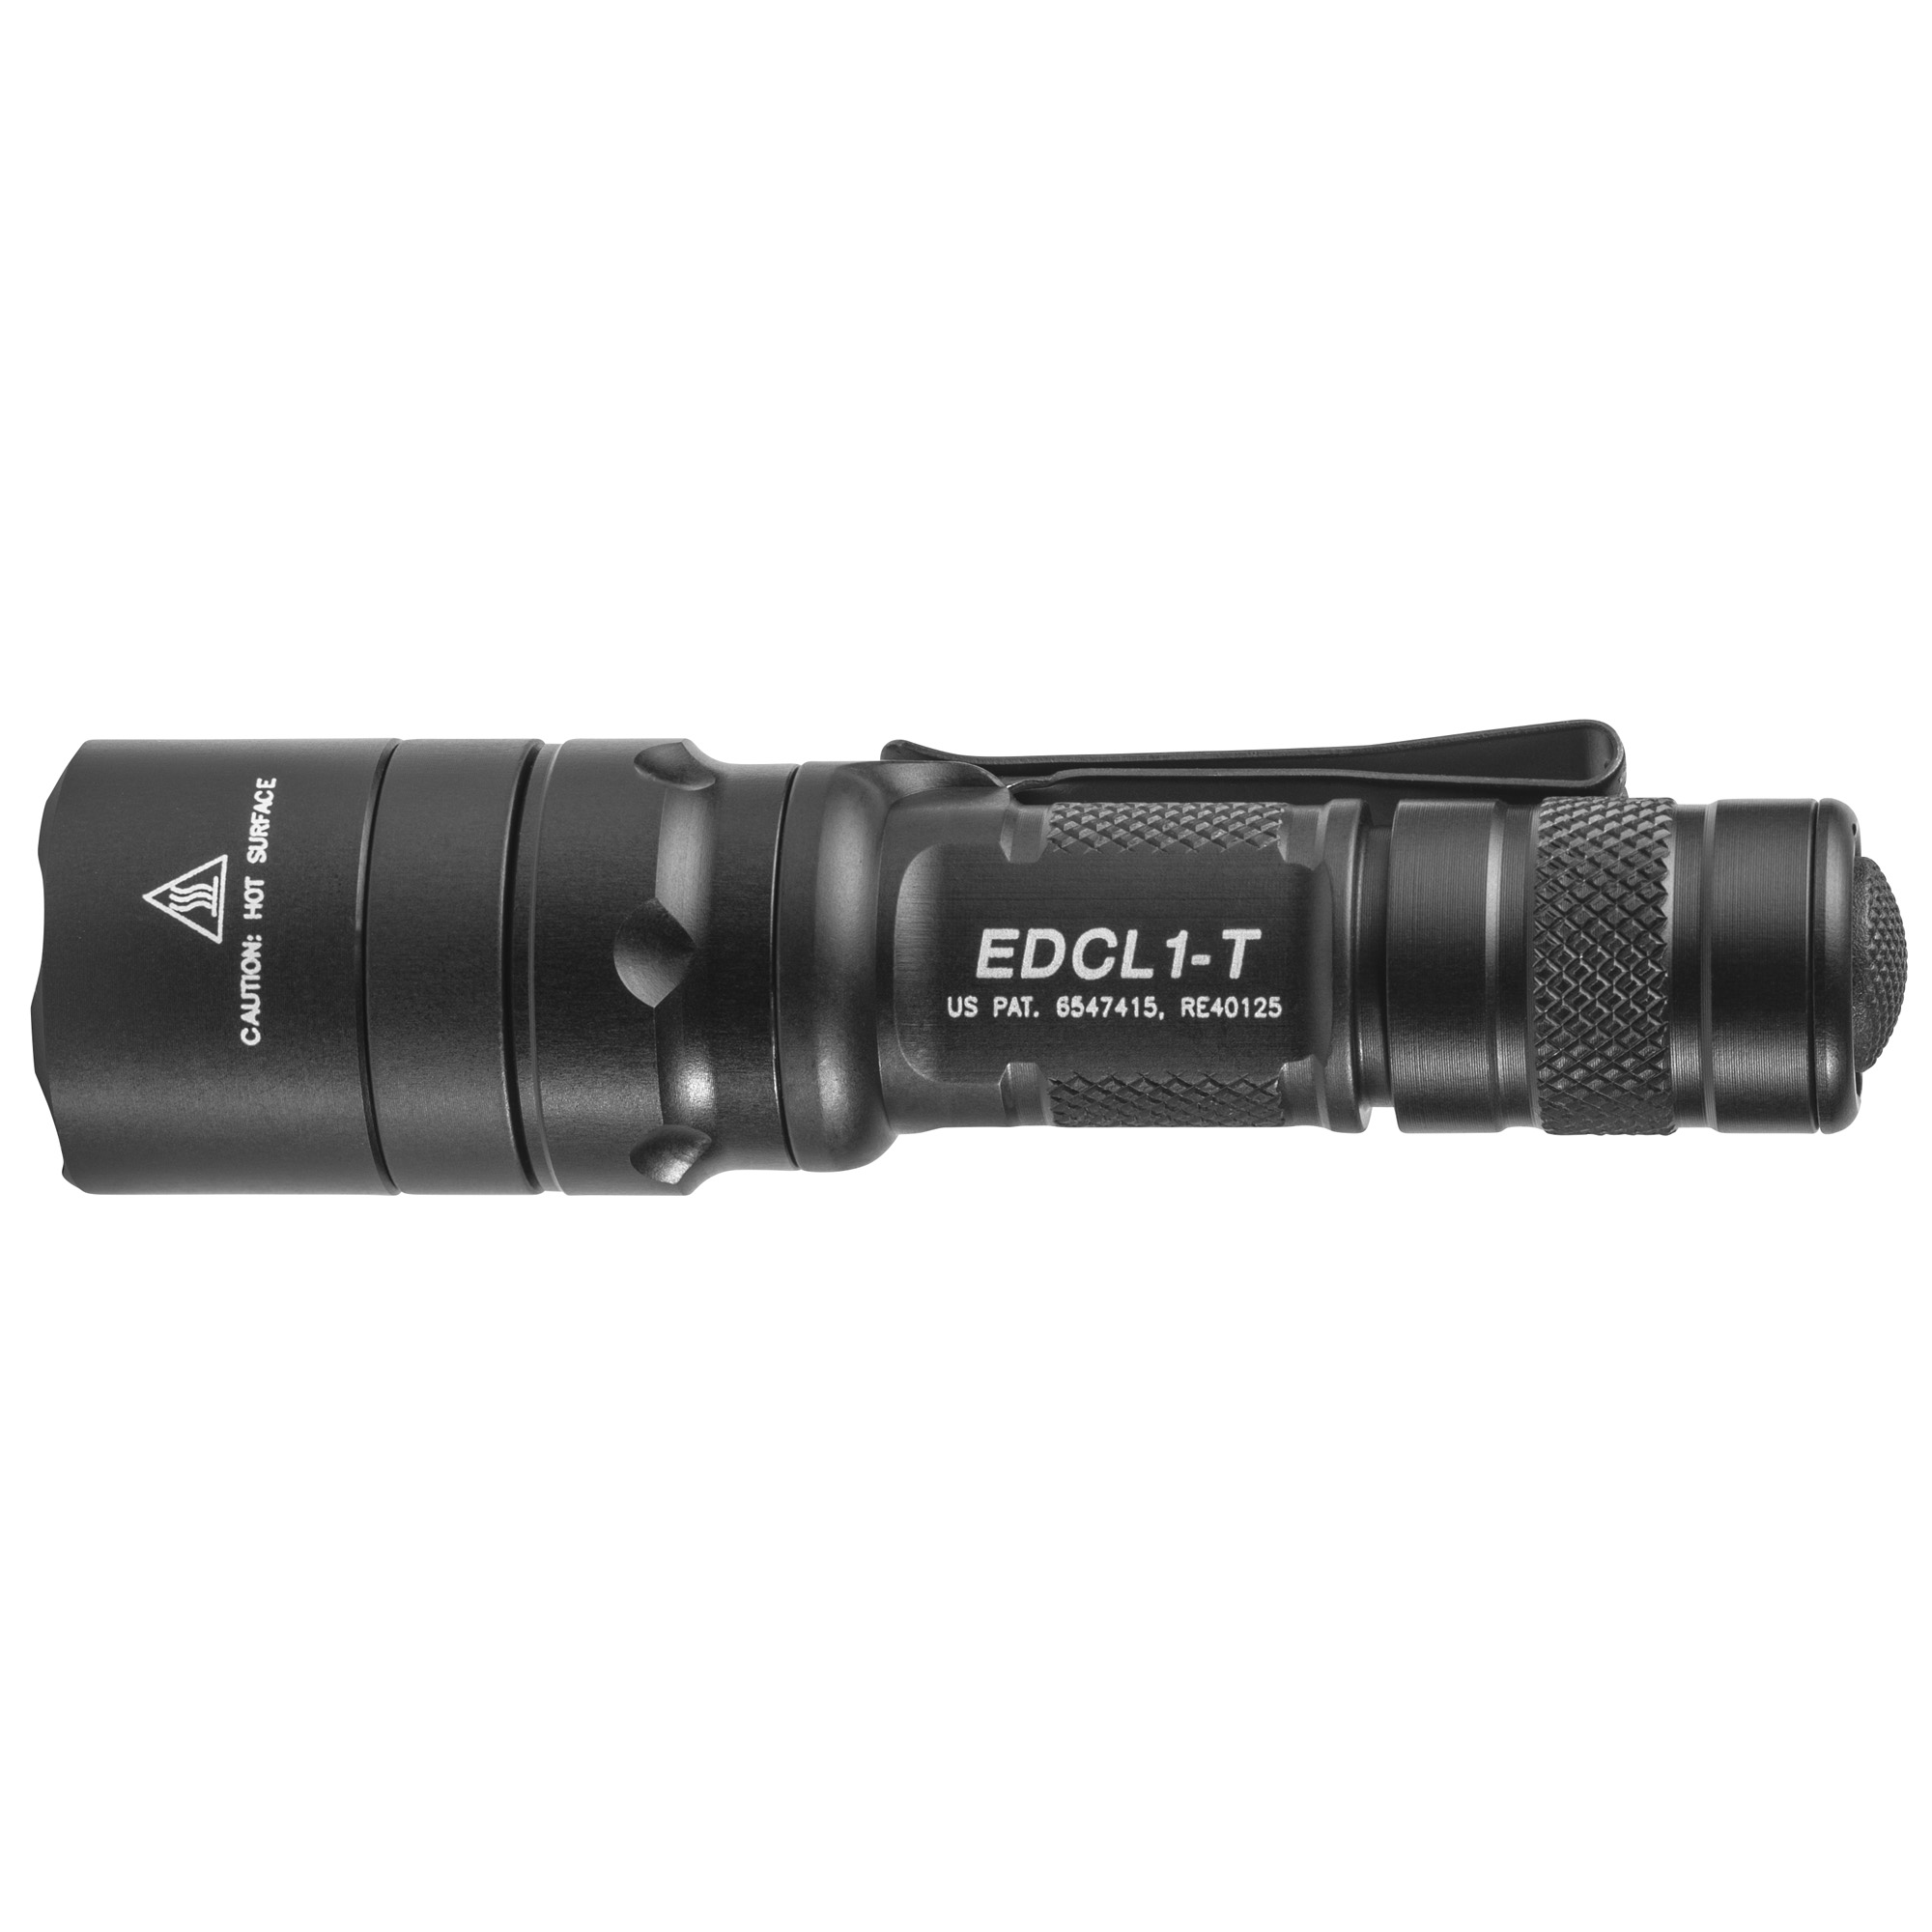 """The Everyday Carry Light 1 is an upgraded version of SureFire's best-selling EB1 Backup(R). Otherwise it's all about bold"""" in-your-face performance"""" with its high-output LED delivering 500 lumens of blinding white light on high and a useful 5 lumens on low. A Total Internal Reflection (TIR) lens shapes the virtually indestructible LED's light into a versatile beam with plenty of throw but optimized for situational awareness"""" essential in an everyday carry light."""